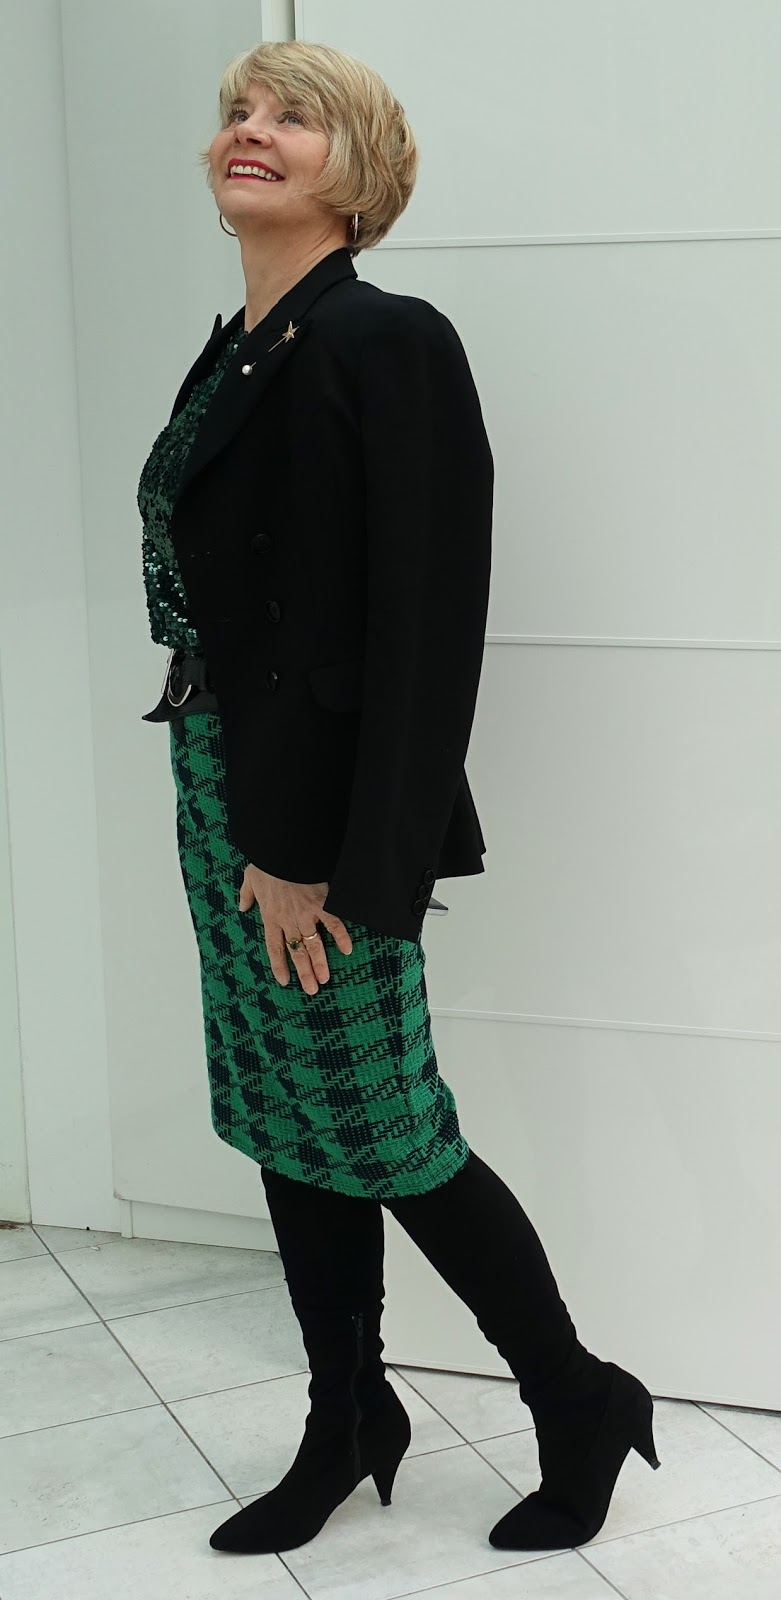 Image showing over 45s fashion blogger Gail Hanlon wearing sequins as daytime attire